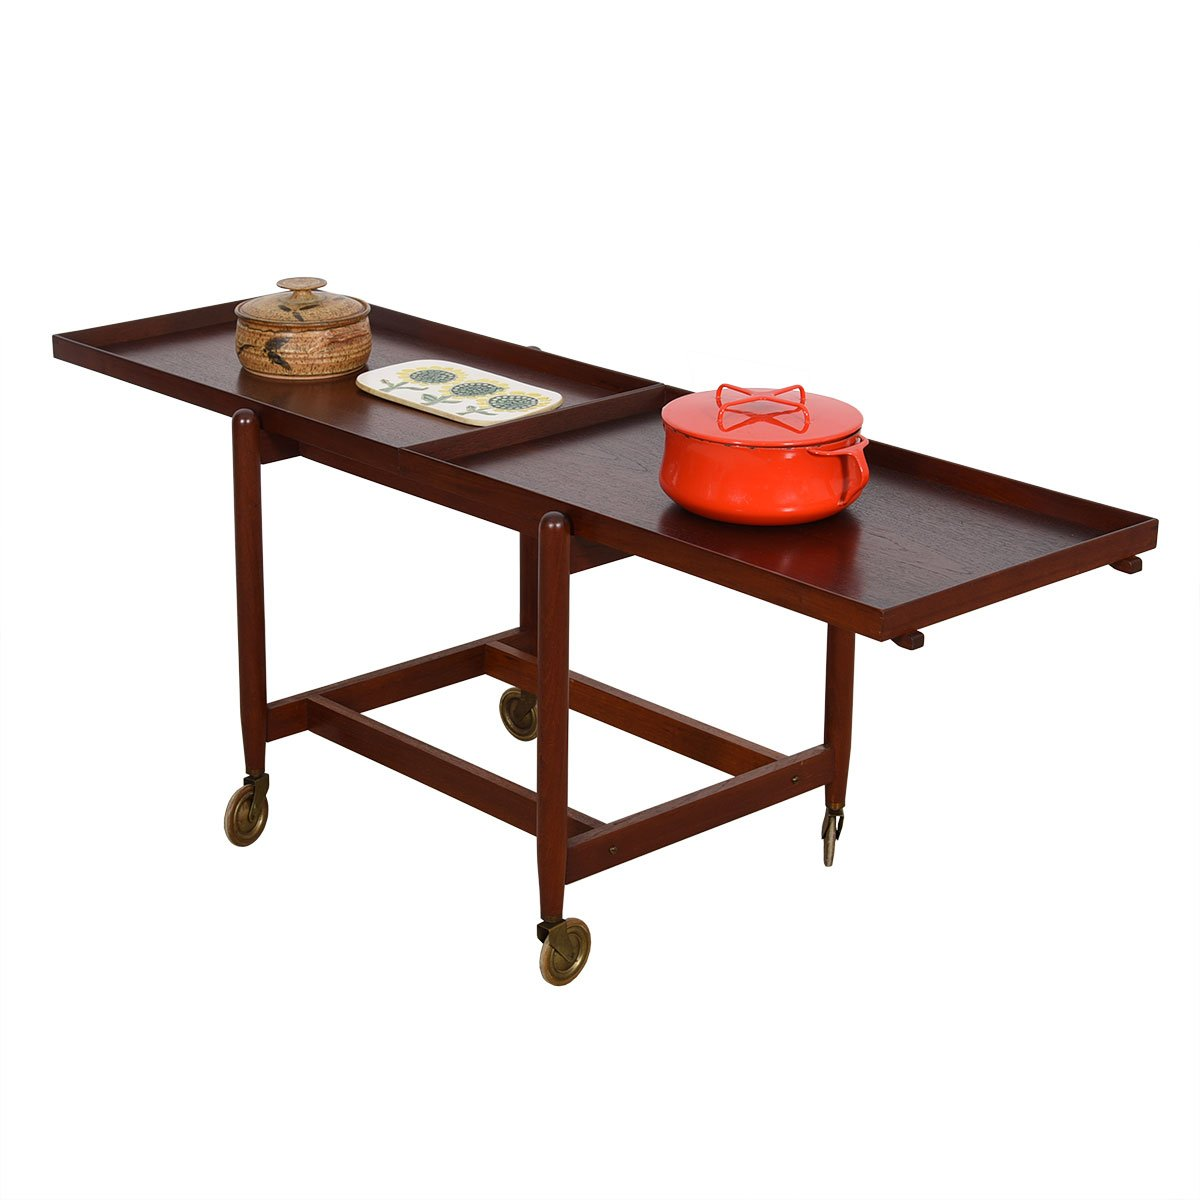 Early Danish Teak Expanding Bar Cart with Removable Tray